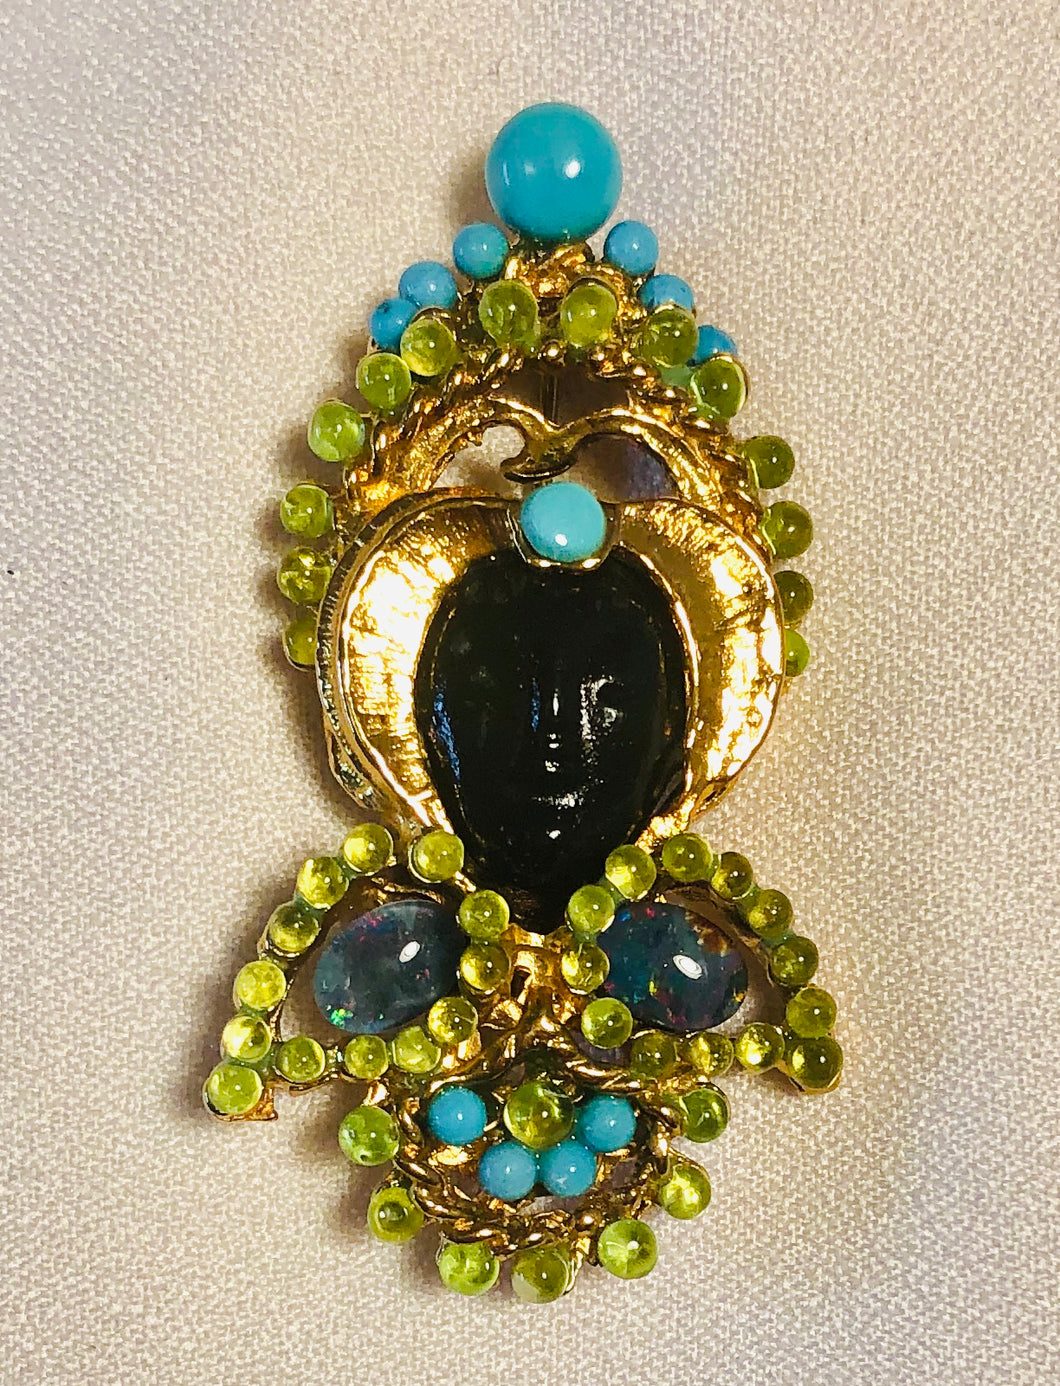 Peridot, Turquoise and Blue Opal Brooch